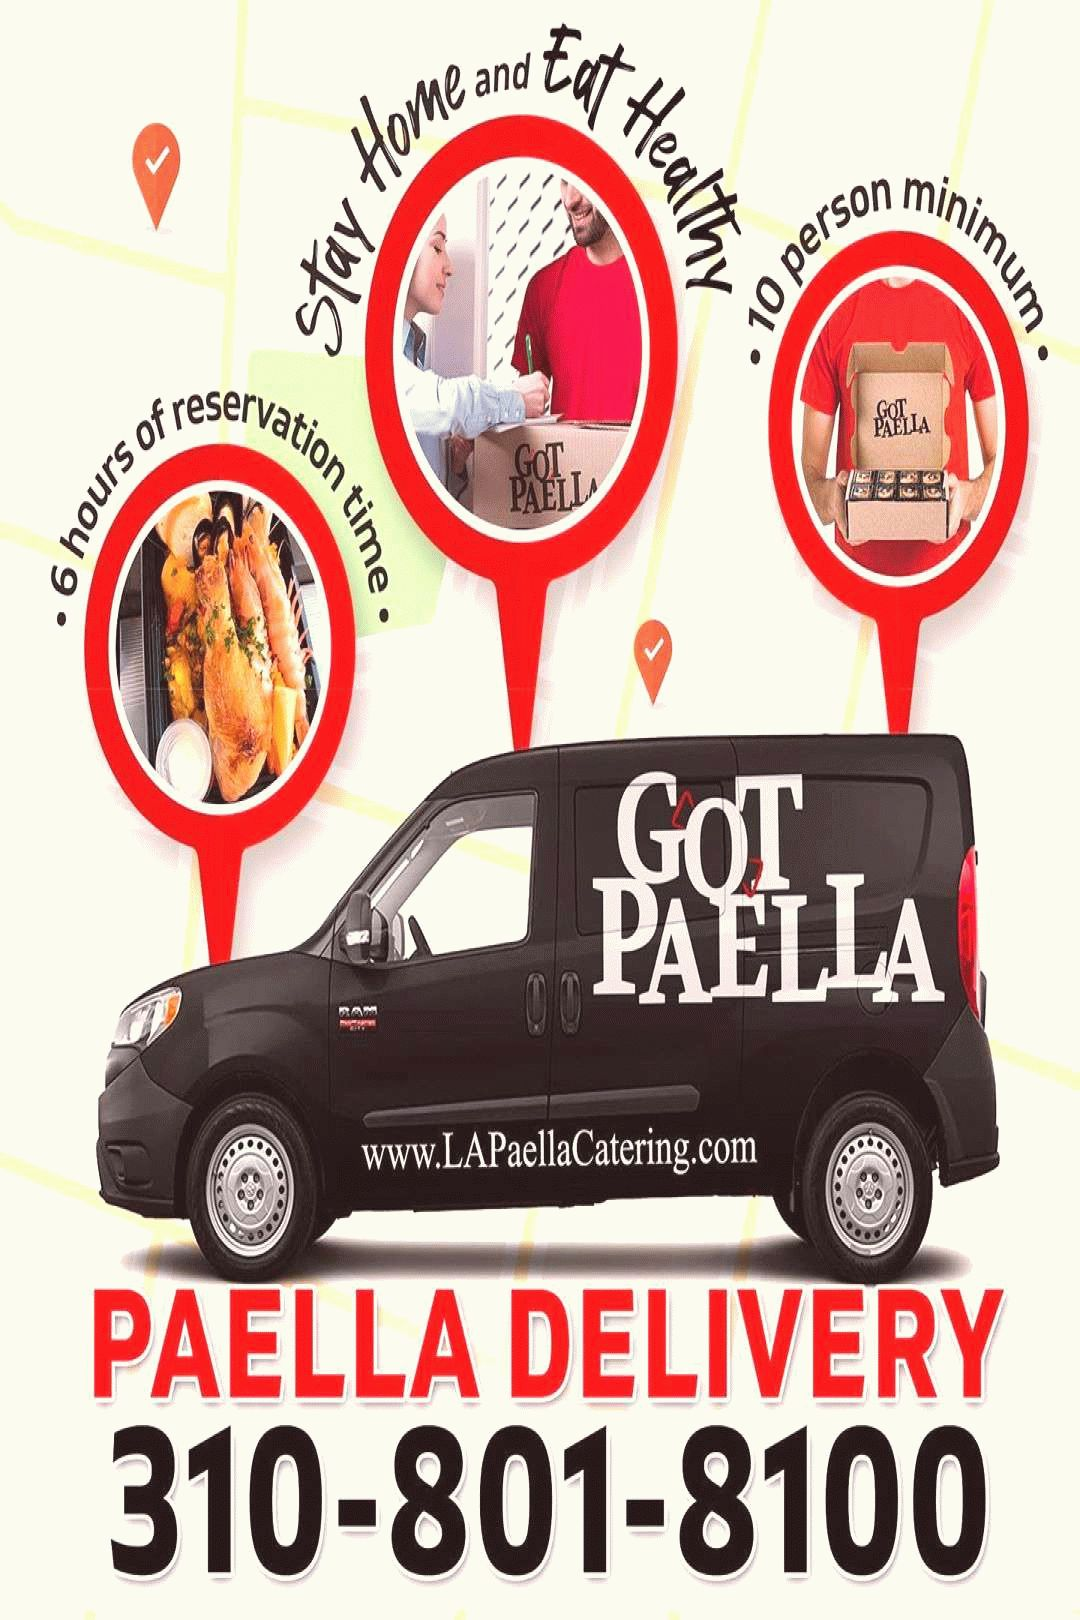 Photo by LA Paella Catering on March 13 2020 Image may contai